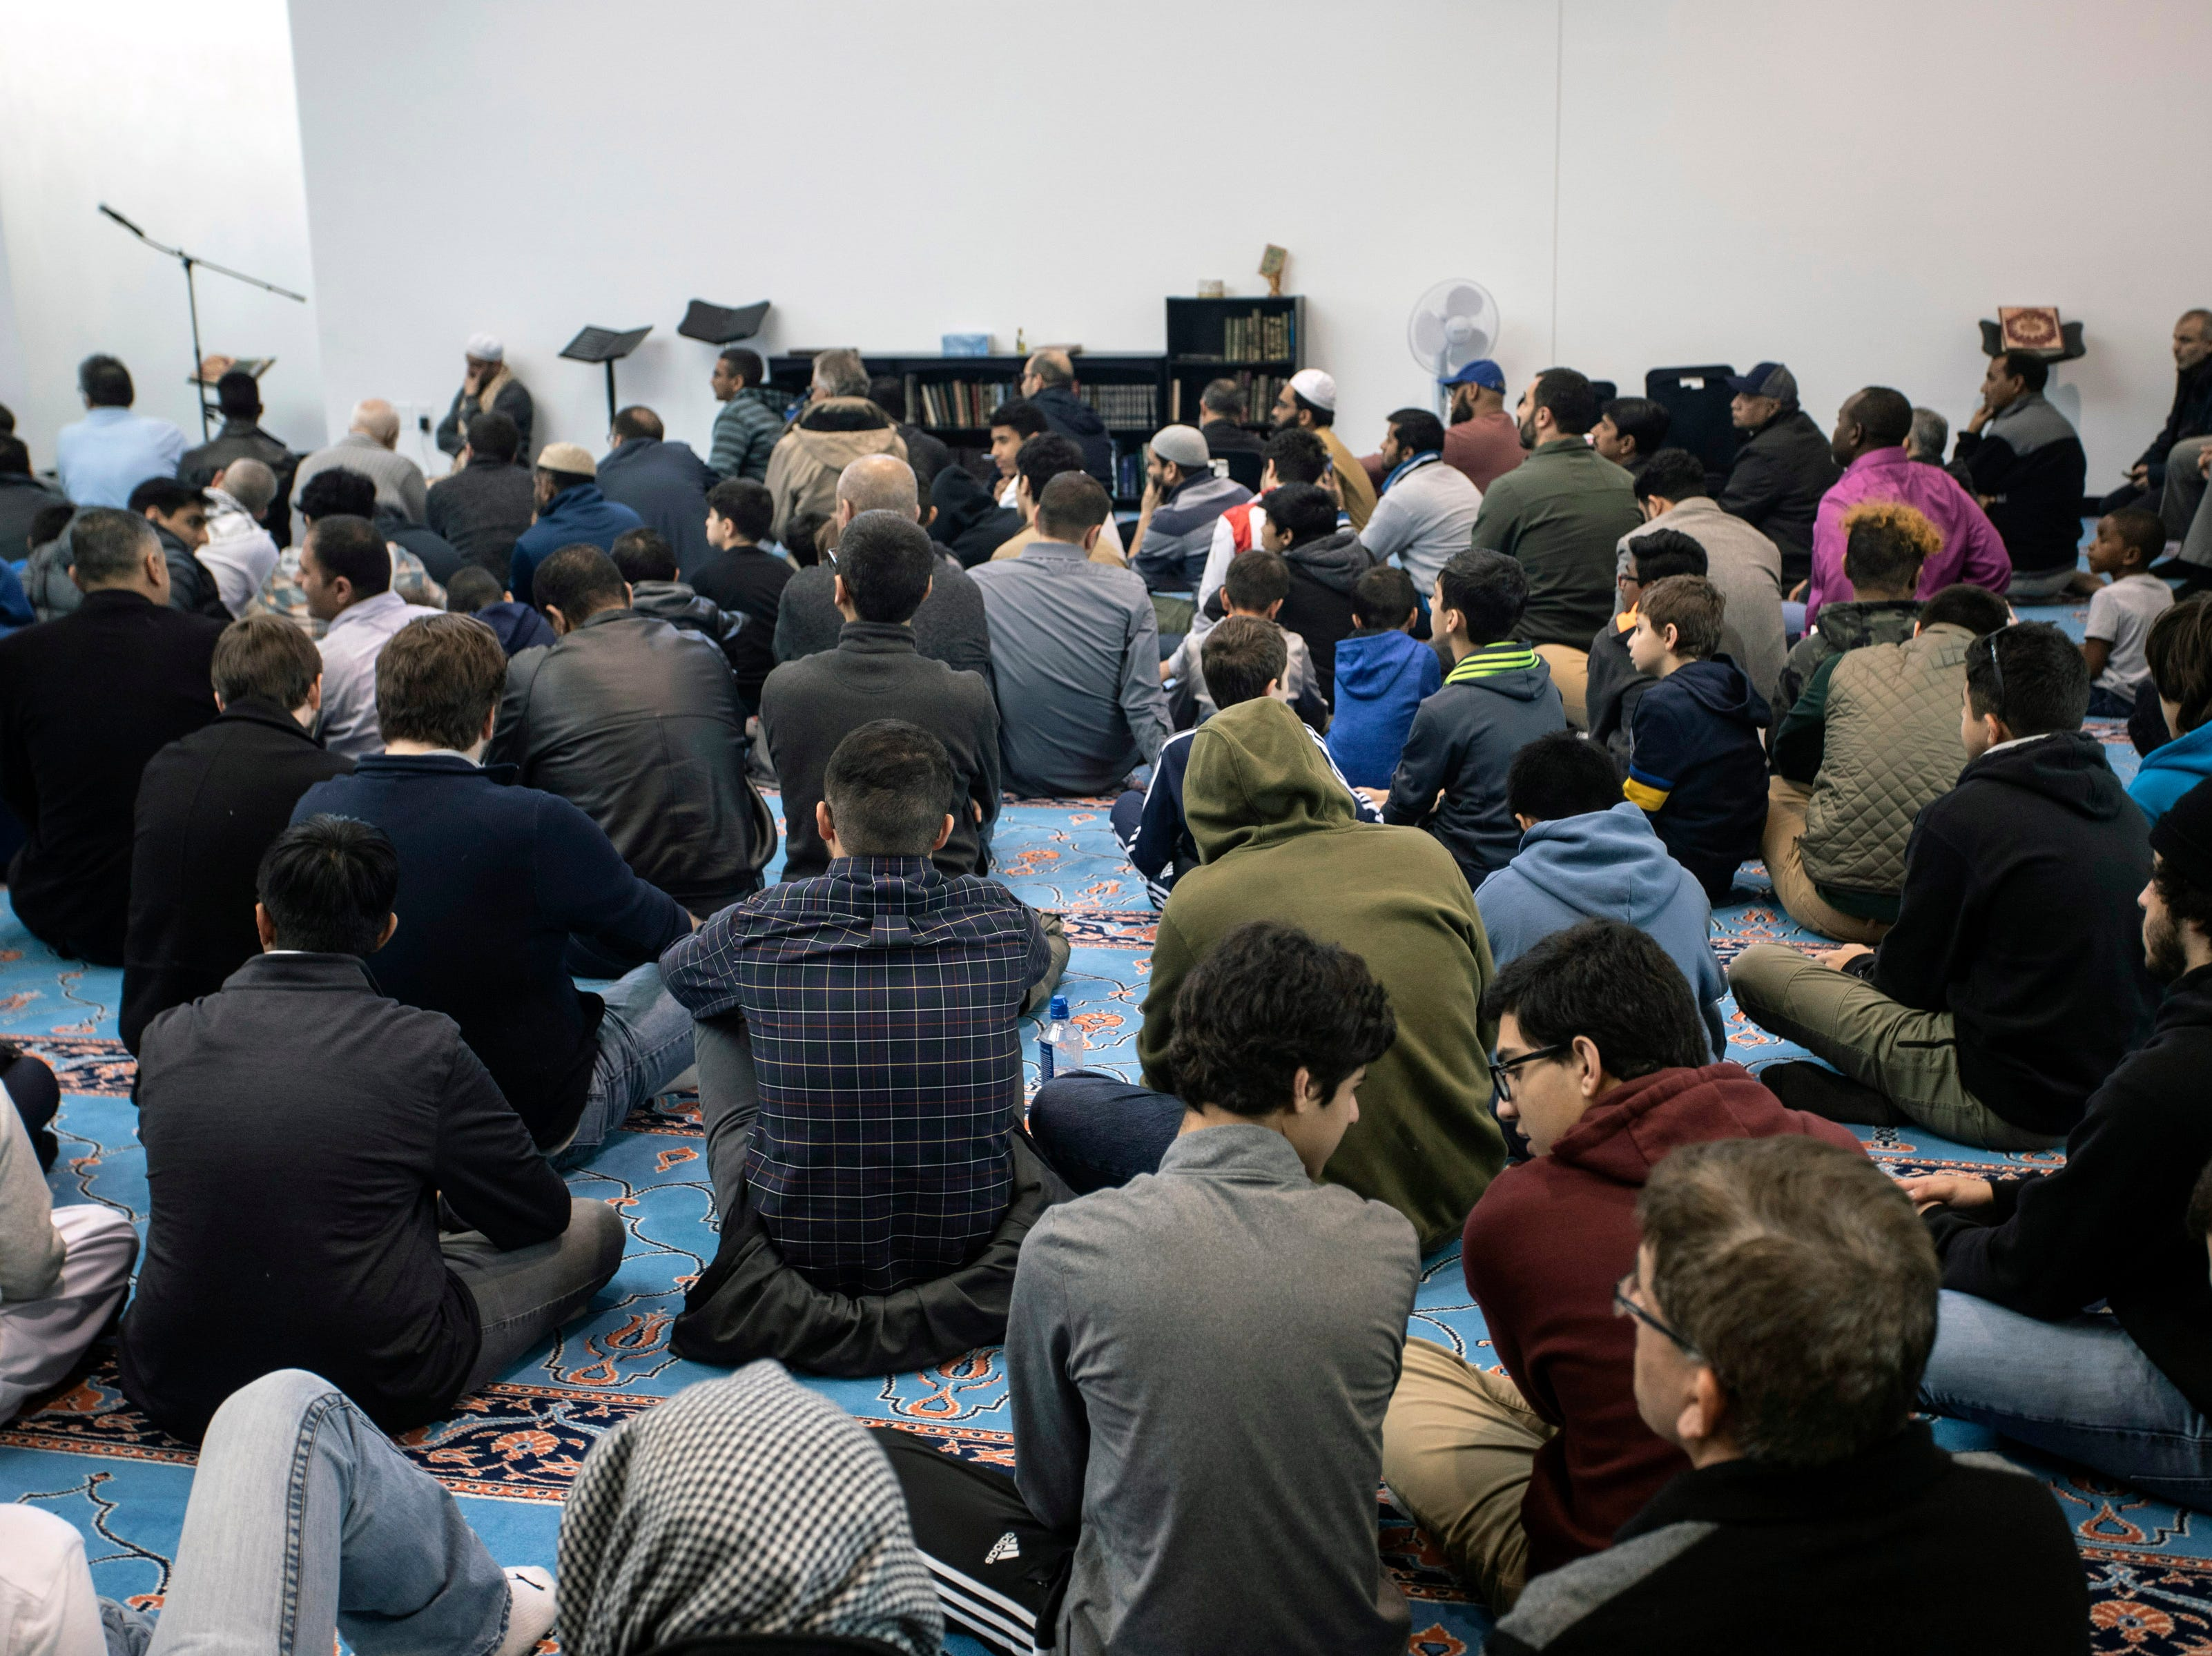 A prayer service was held at the Muslim Community Center of Louisville on Saturday afternoon to honor the victims in Friday's mosque shooting in New Zealand. 3/16/19